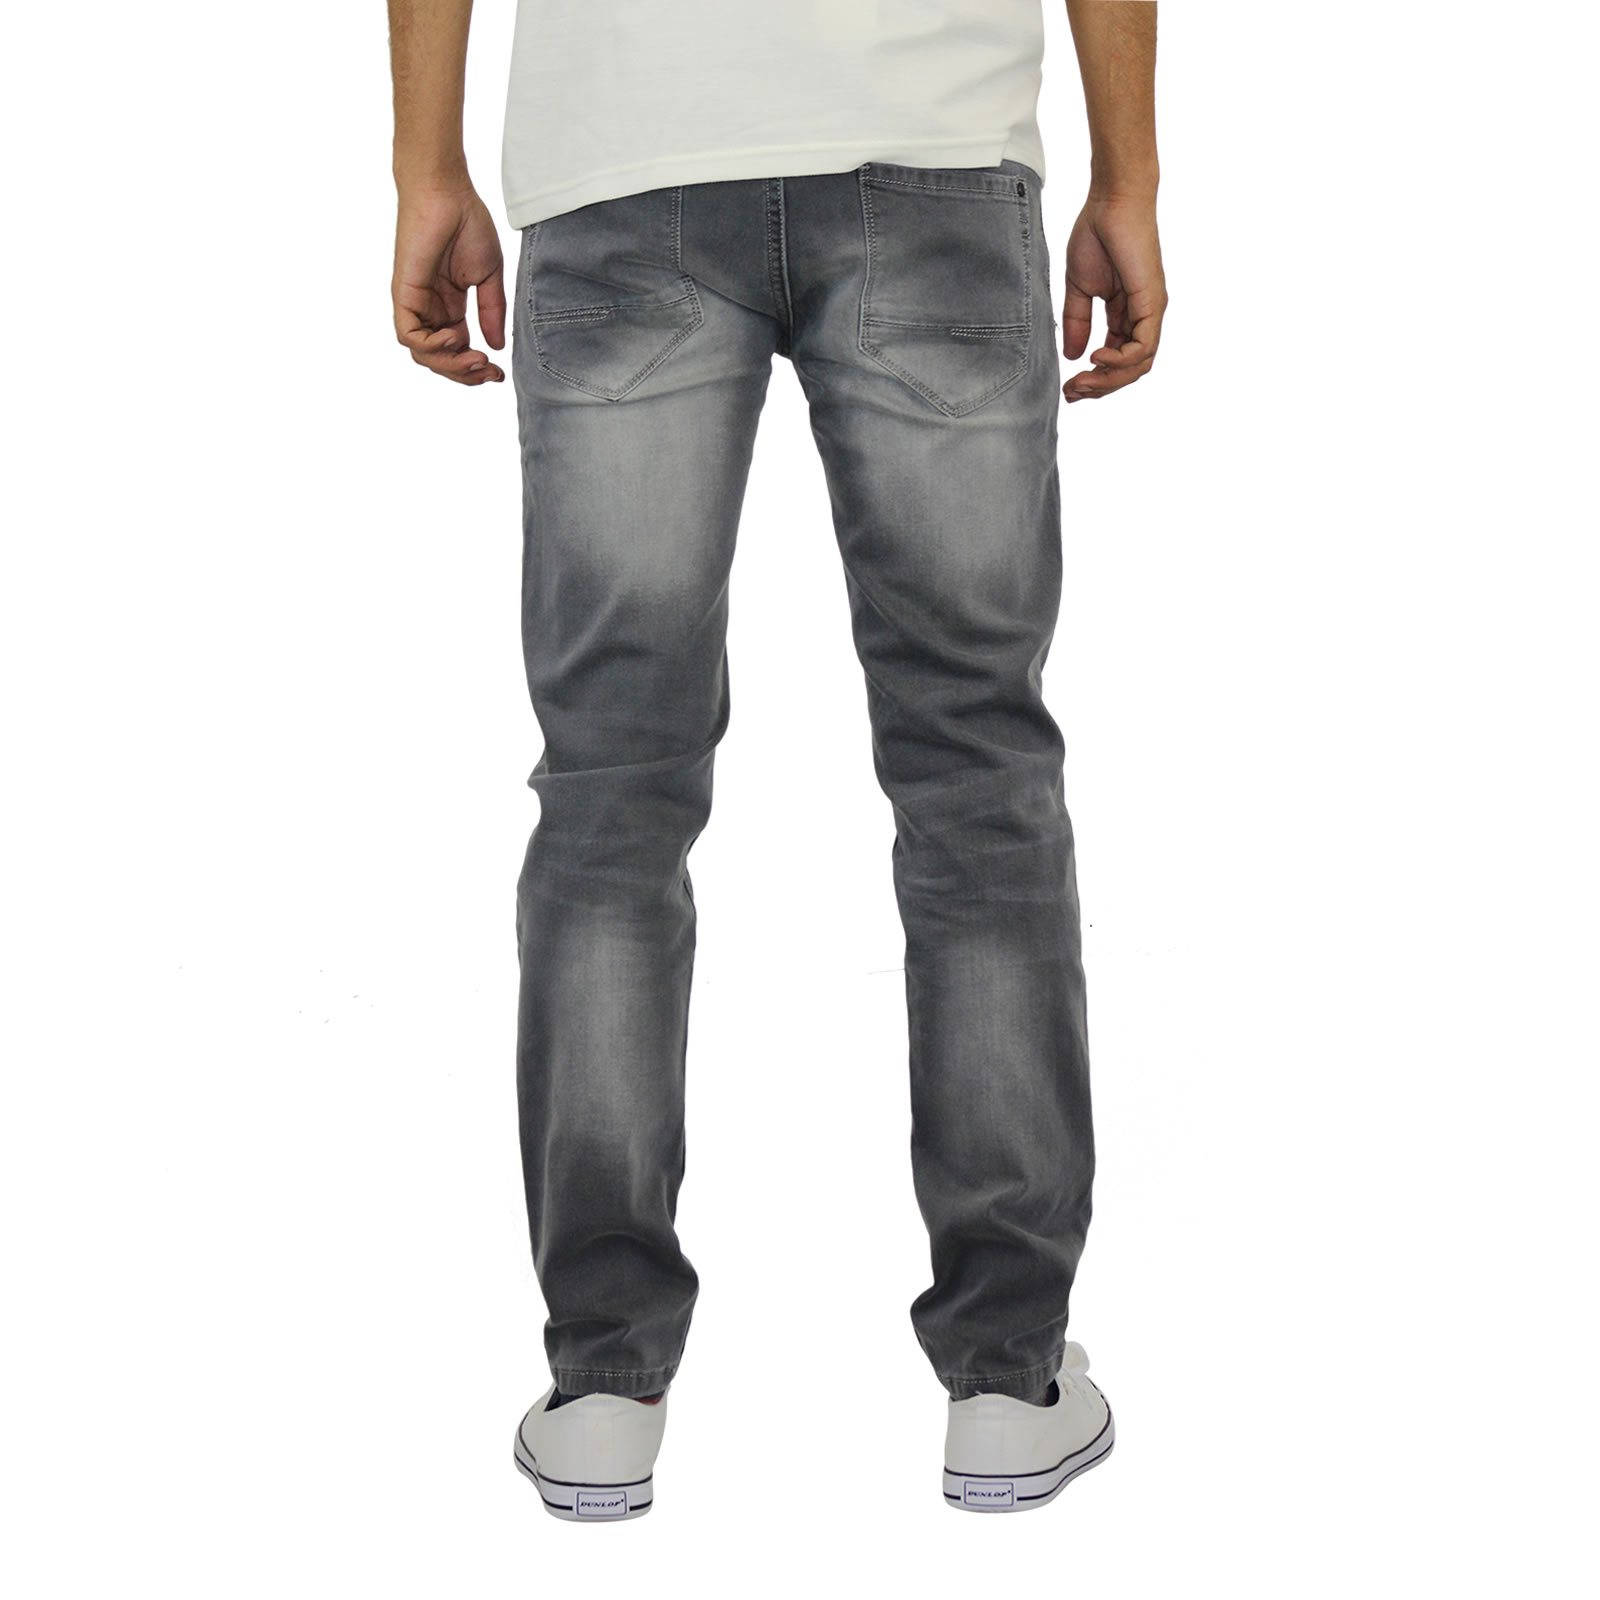 gtacashbank.ga: mens soft jeans. From The Community. RISE SUPER STRETCHY SKINNY JEANS with soft and high quality denim ZLZ Men's Ripped Skinny Distressed Destroyed Slim Fit Stretch Biker Jeans Pants with Holes. by ZLZ. $ - $ $ .